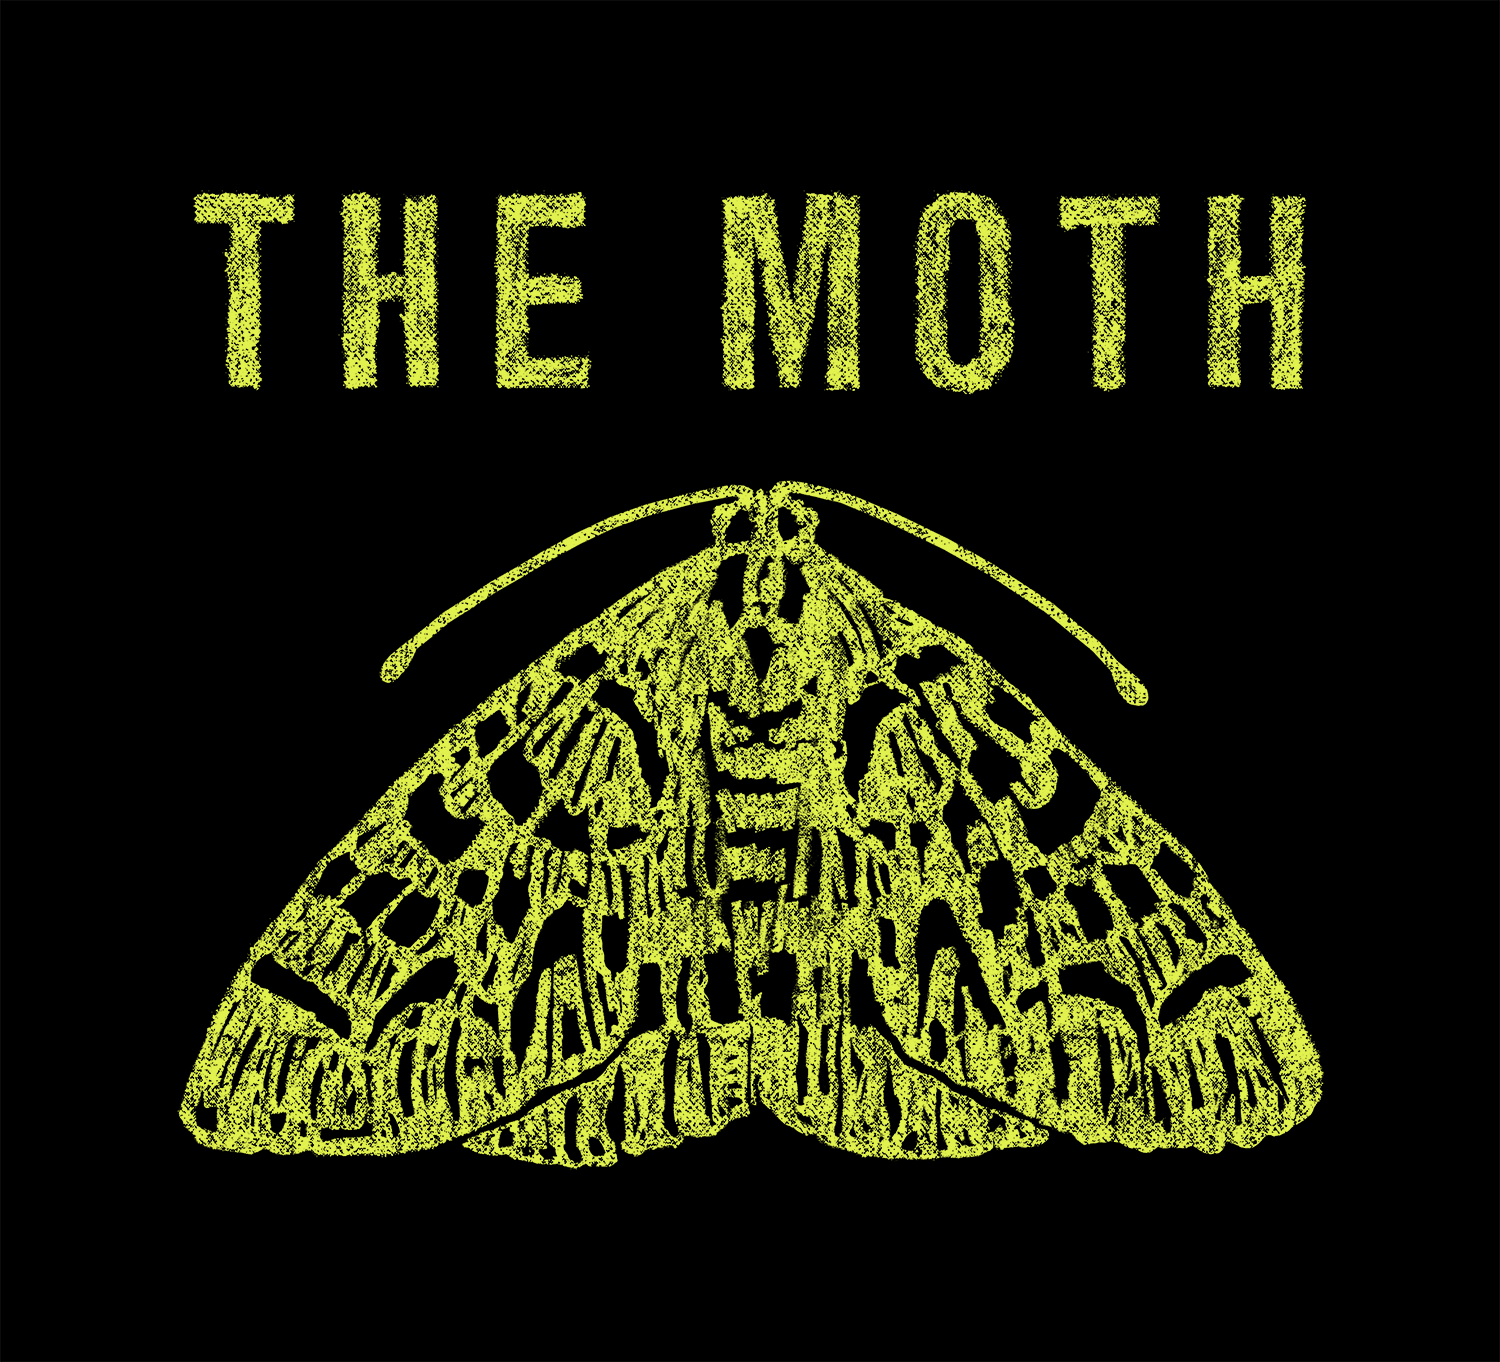 Listen to People Sharing Their Stories at The Moth